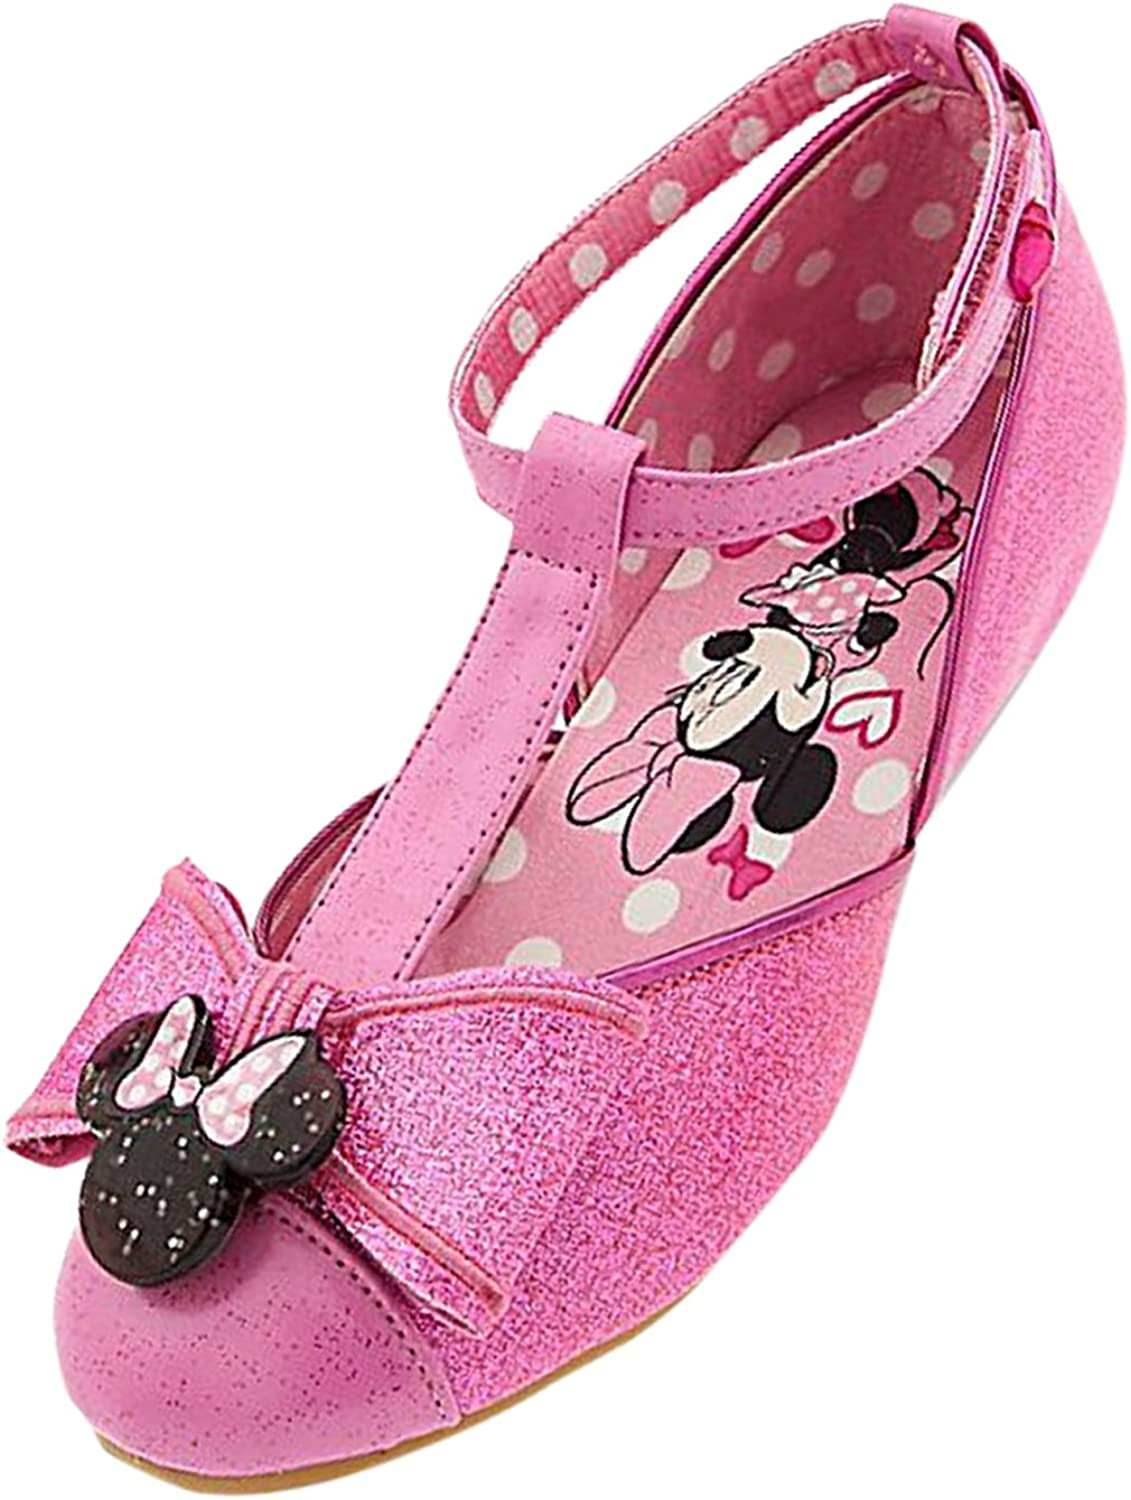 Disney Minnie Mouse Costume Shoes for